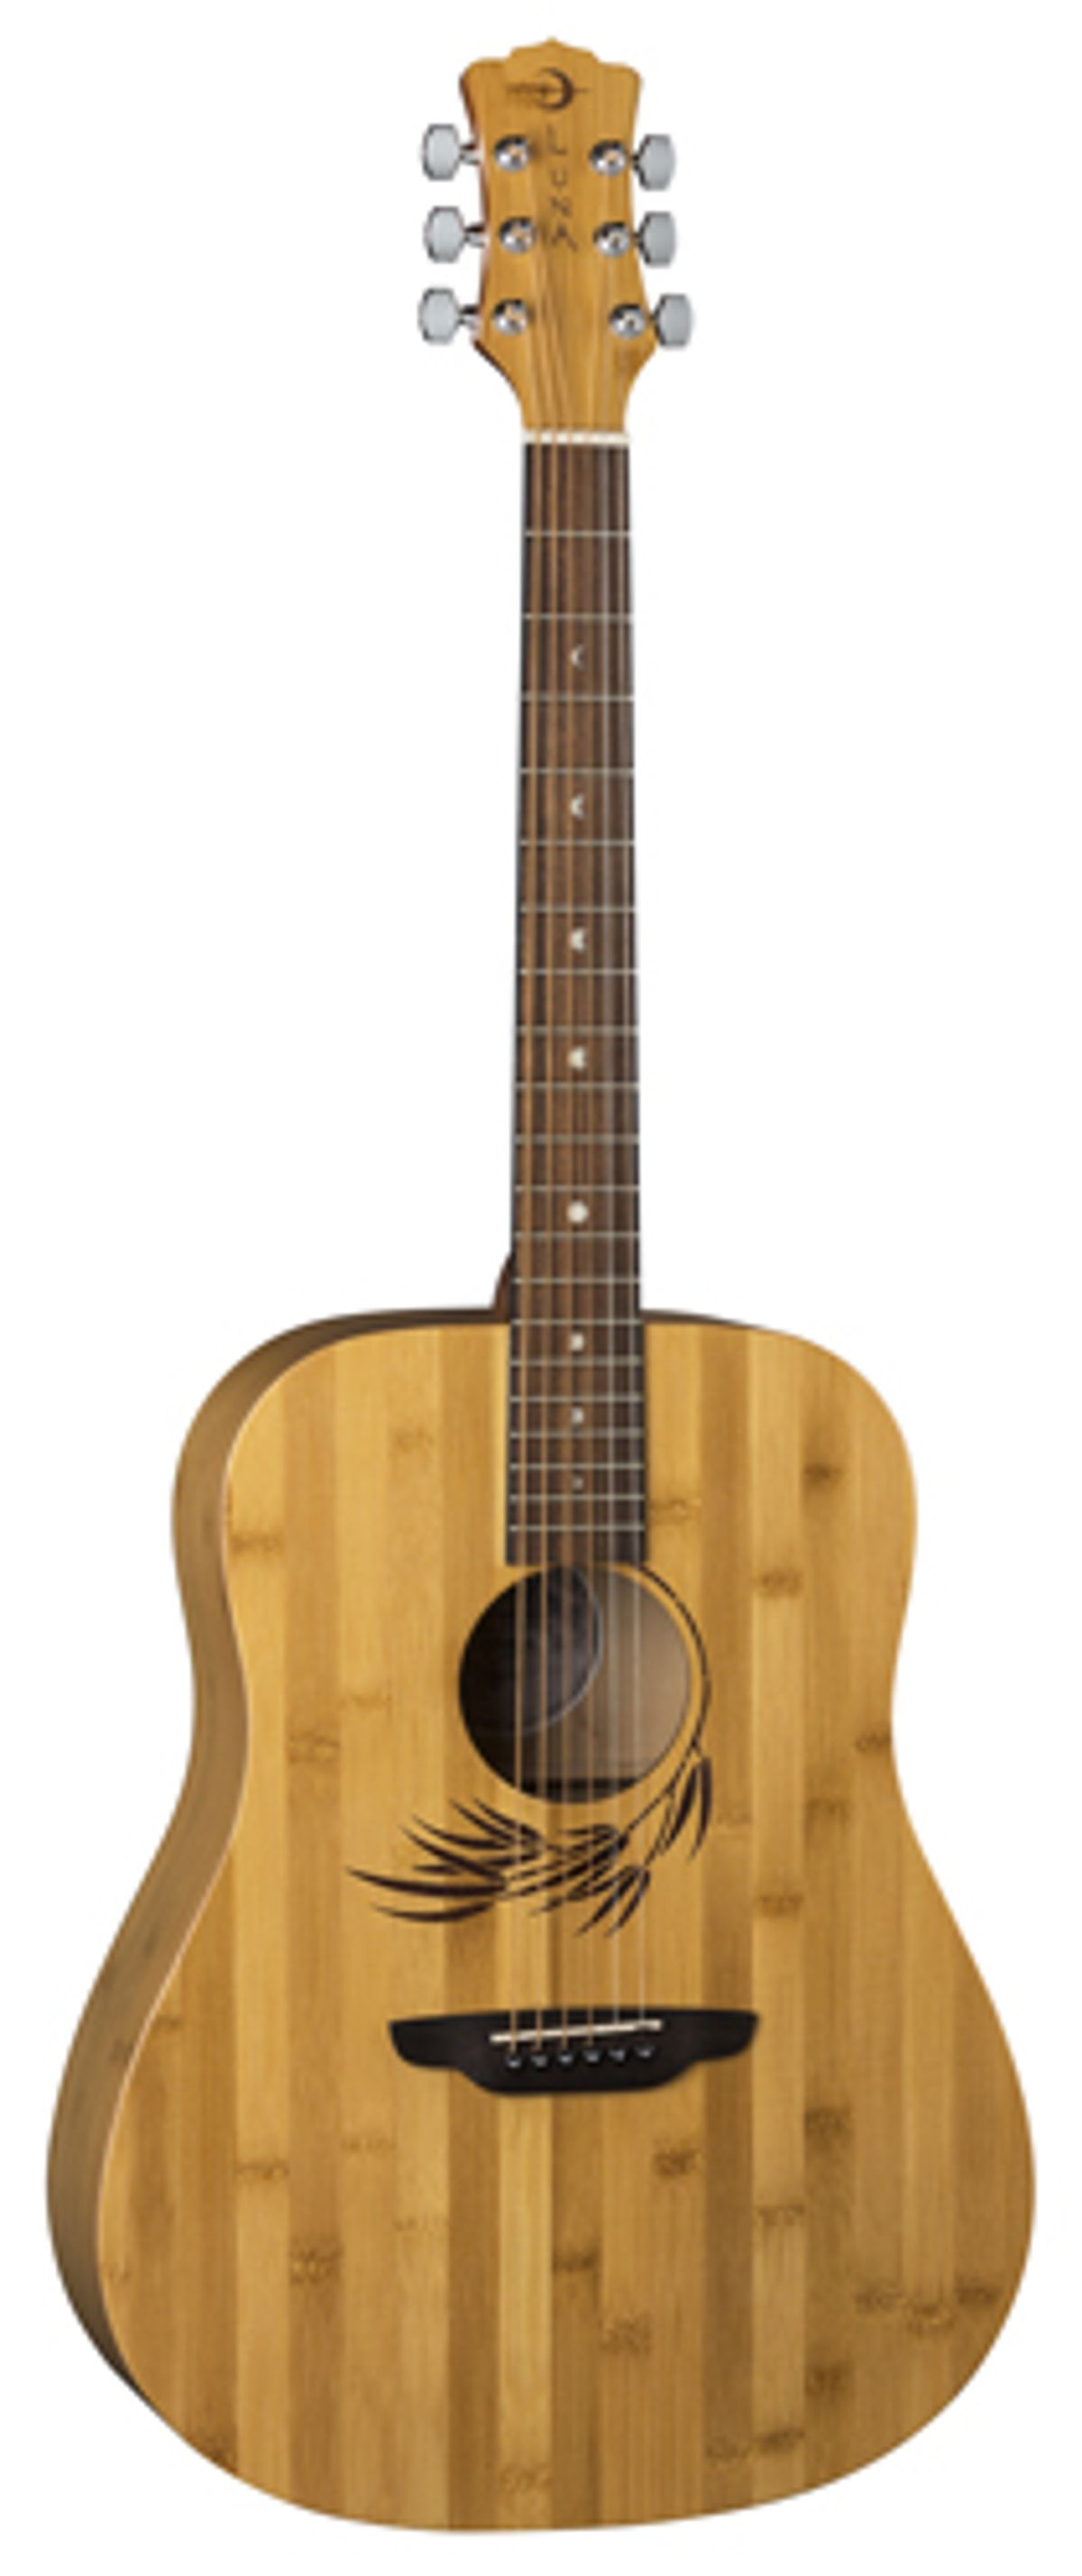 Luna Guitars Adds Woodland Bamboo Dreadnought to Acoustic Bamboo Series